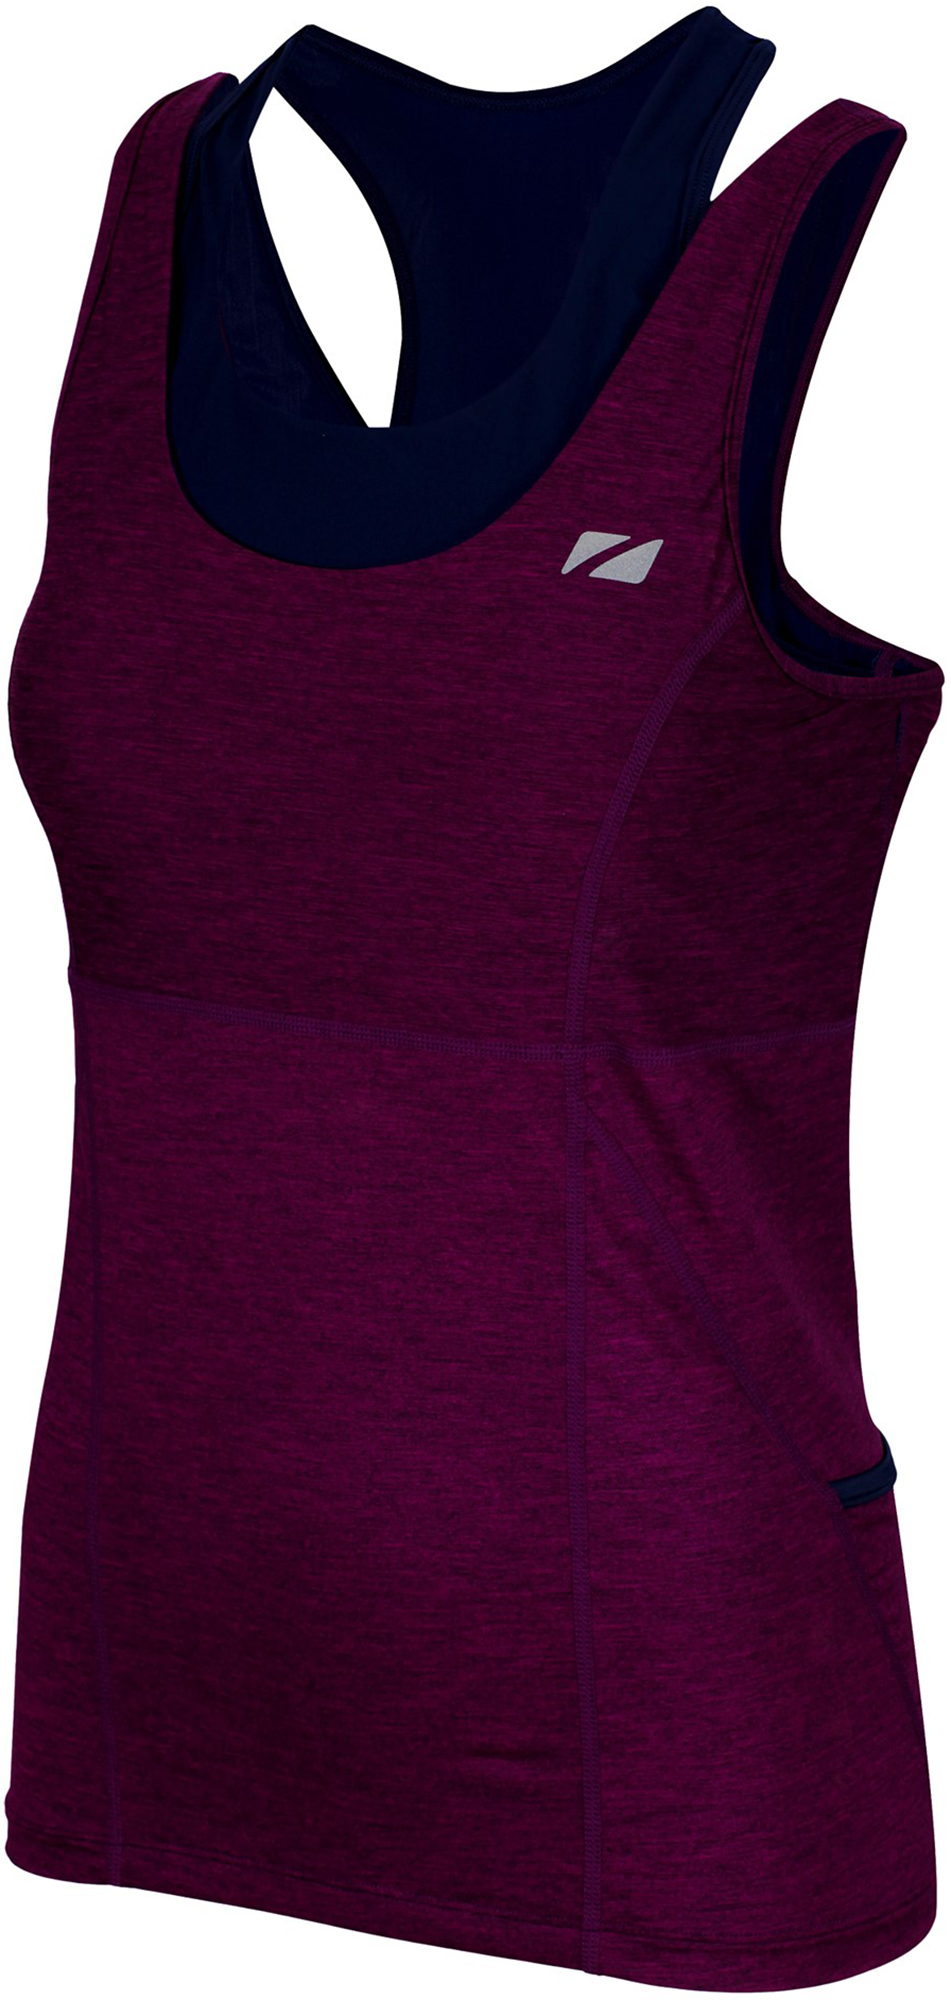 Zone3 Women's Performance Culture Support Tri Top | swim_clothes